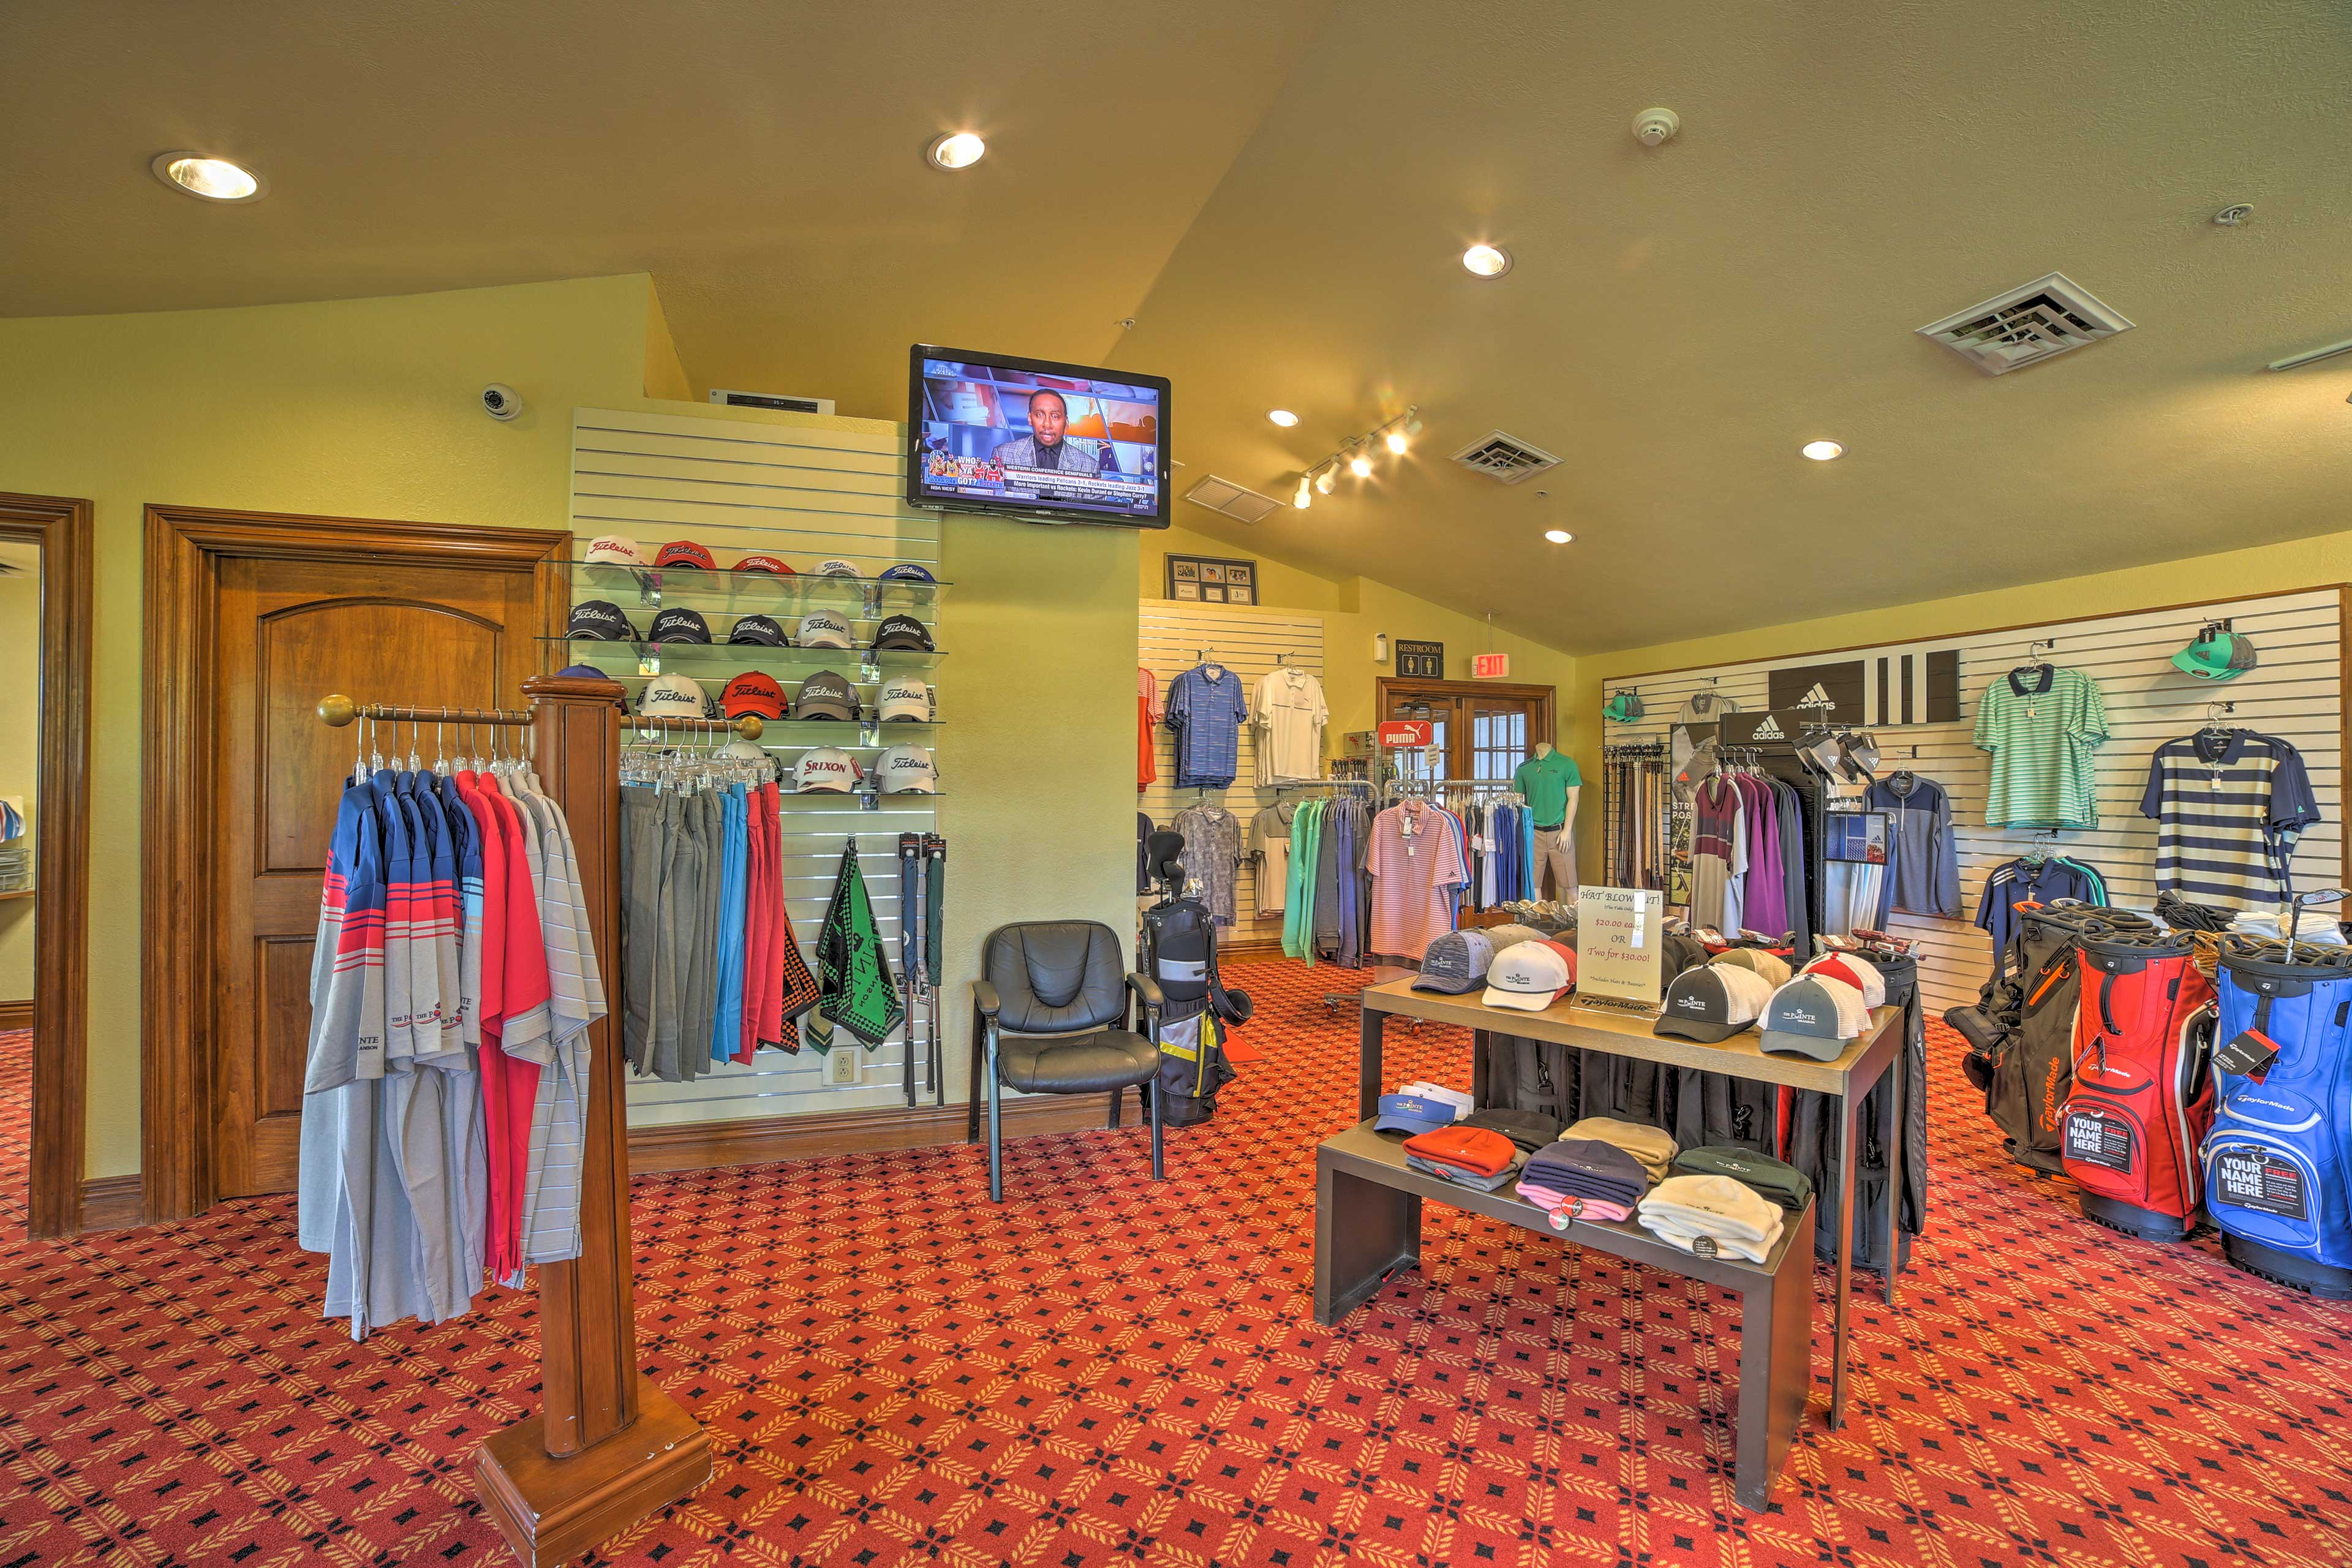 Pick up some golf gear in the local shop!